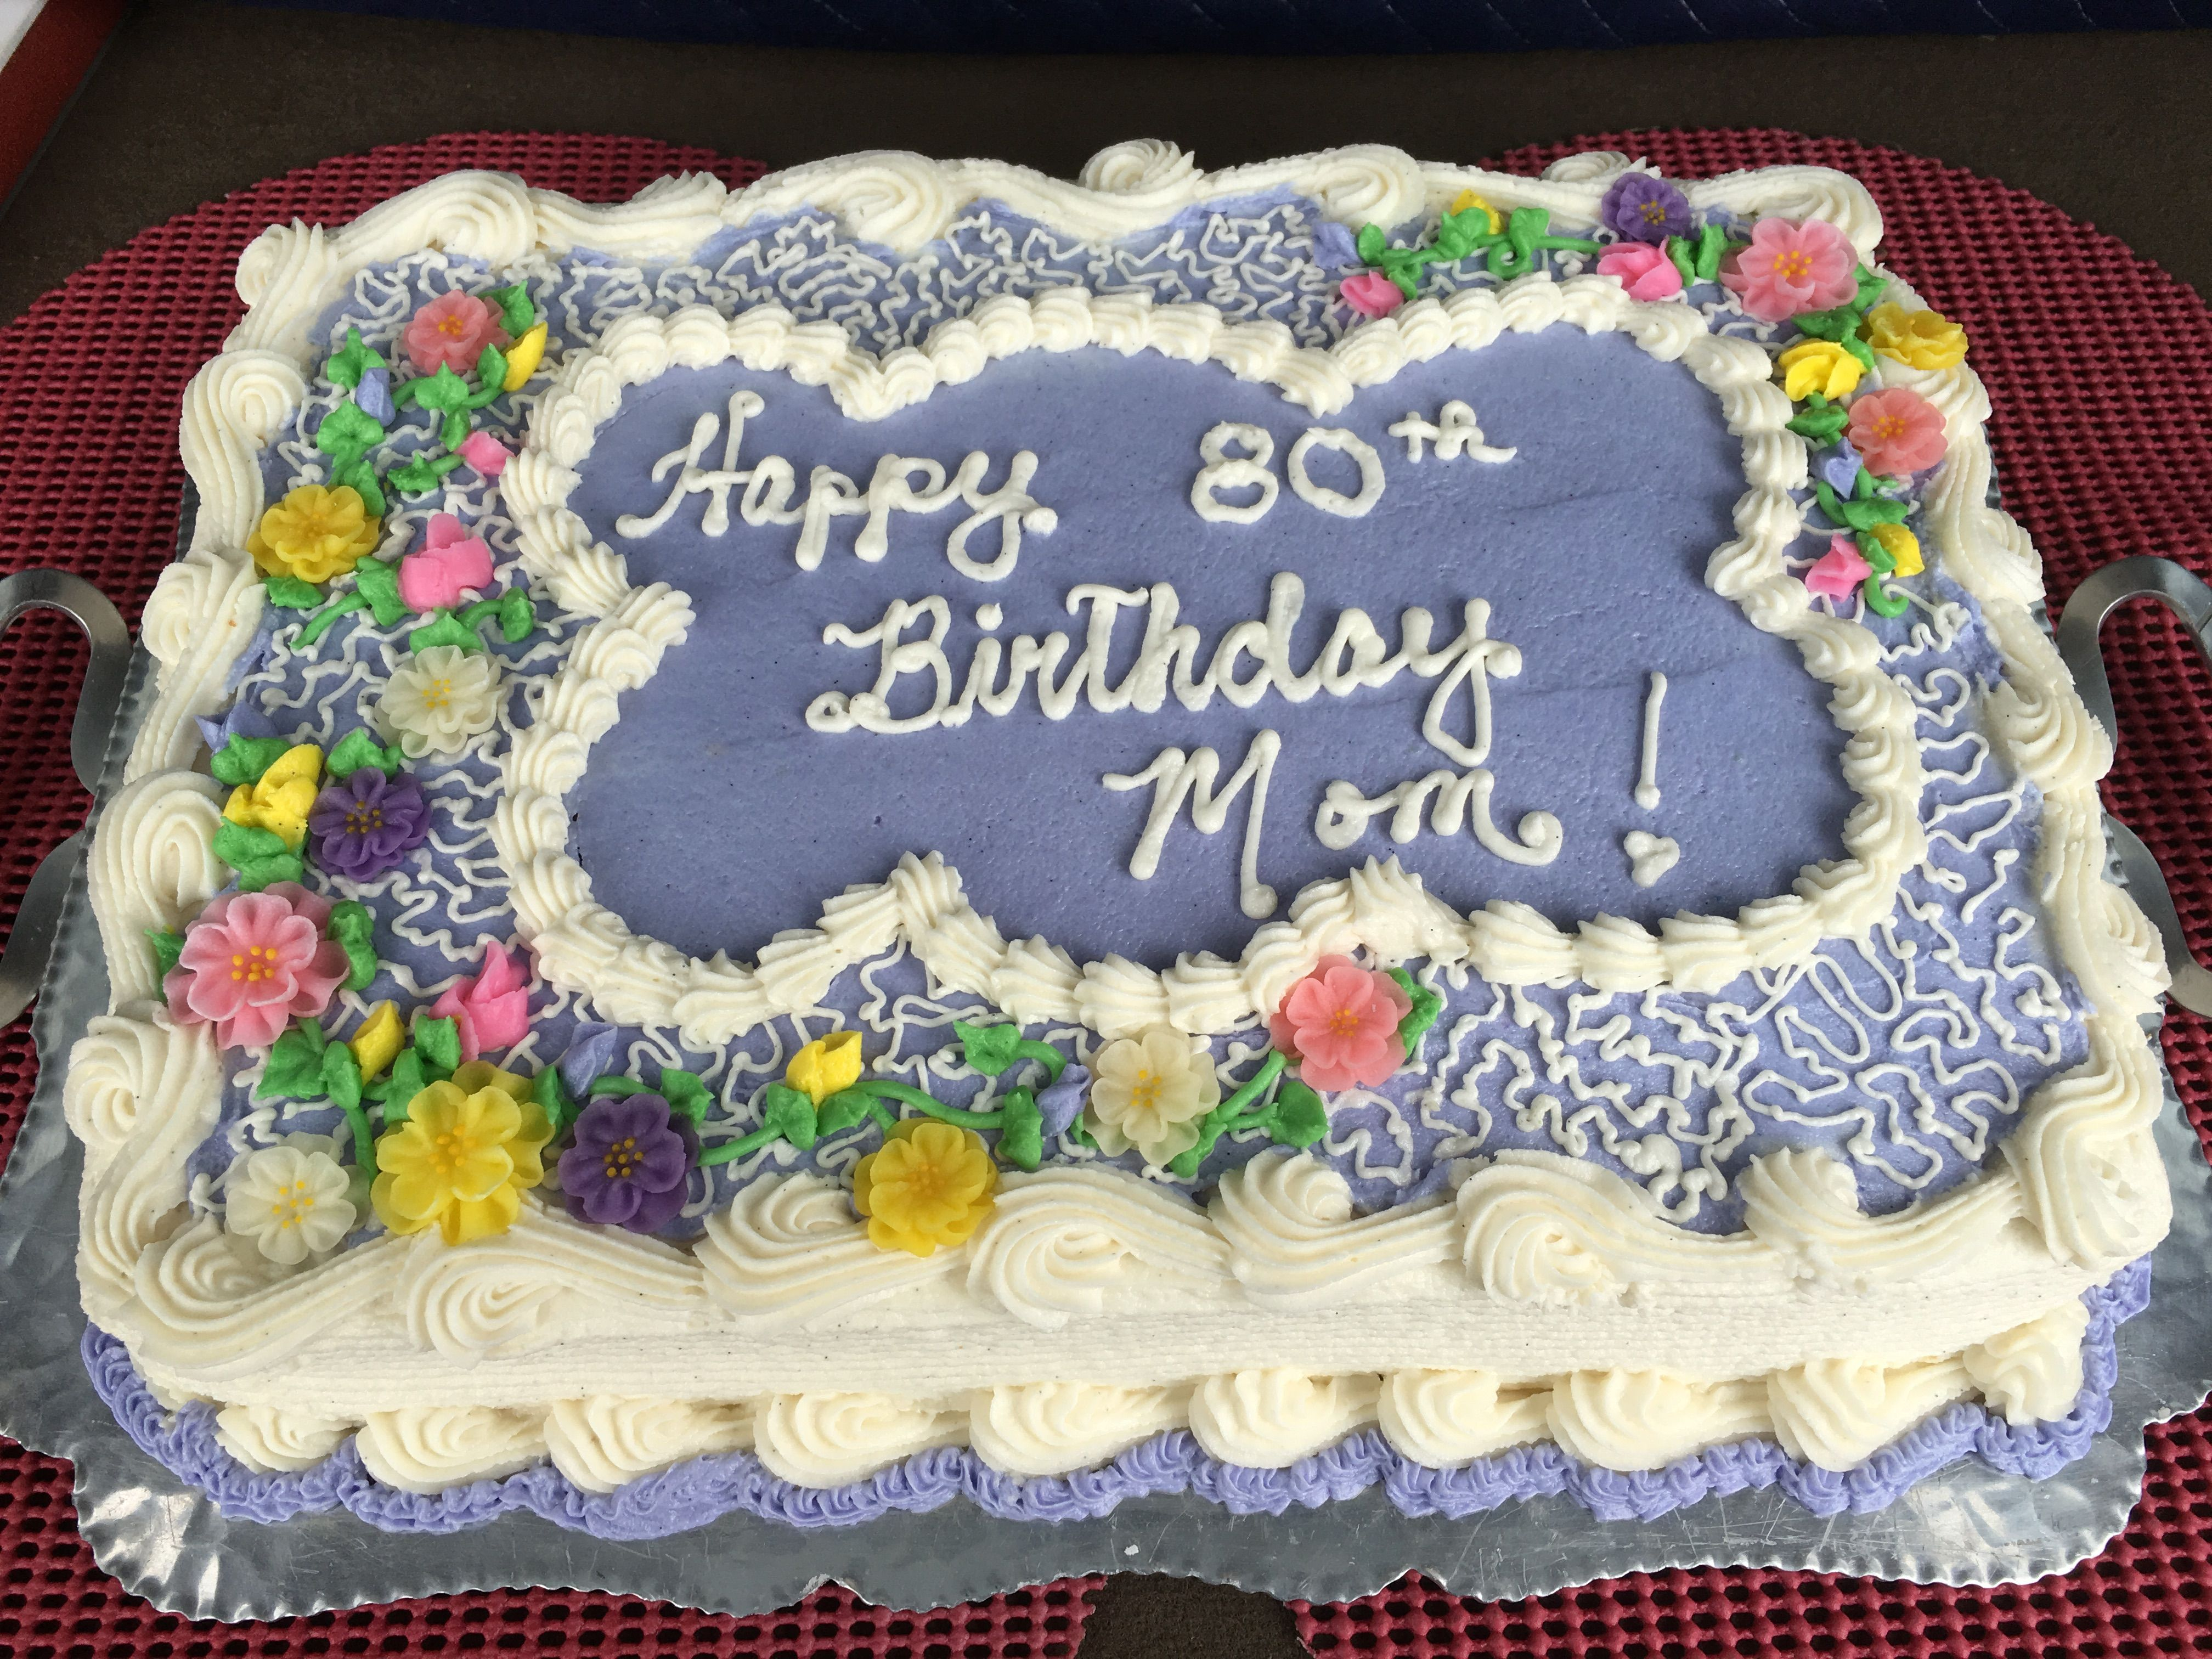 A Special 80th Birthday Sheet Cake For Mom In Her Favorite Colors